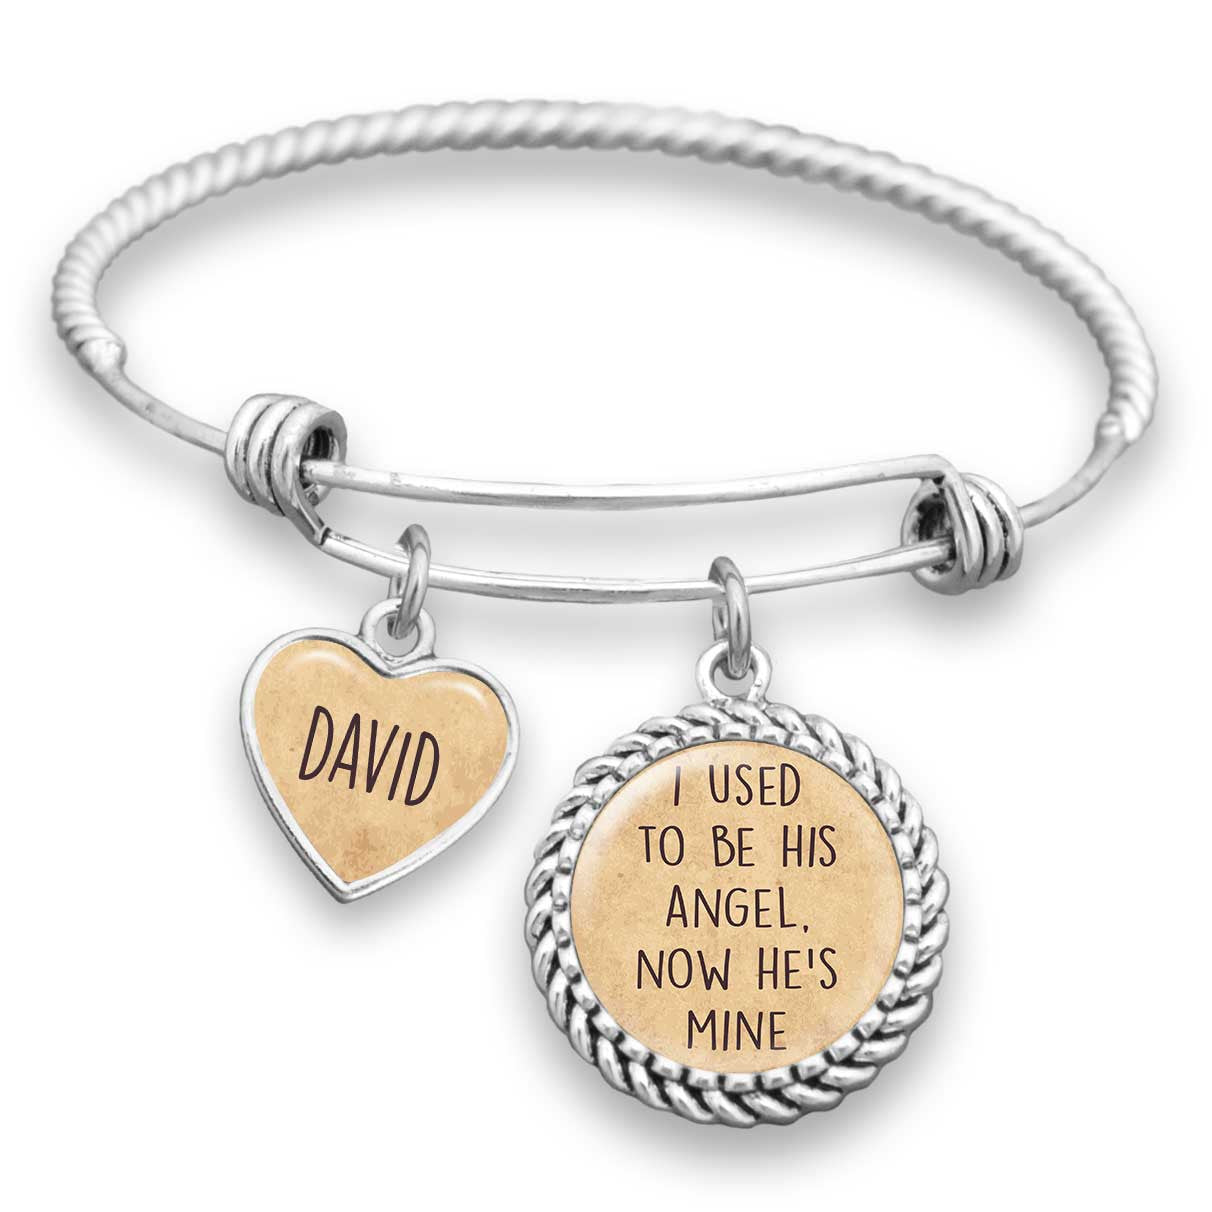 Personalized I Used To Be His Angel, Now He's Mine Bracelet